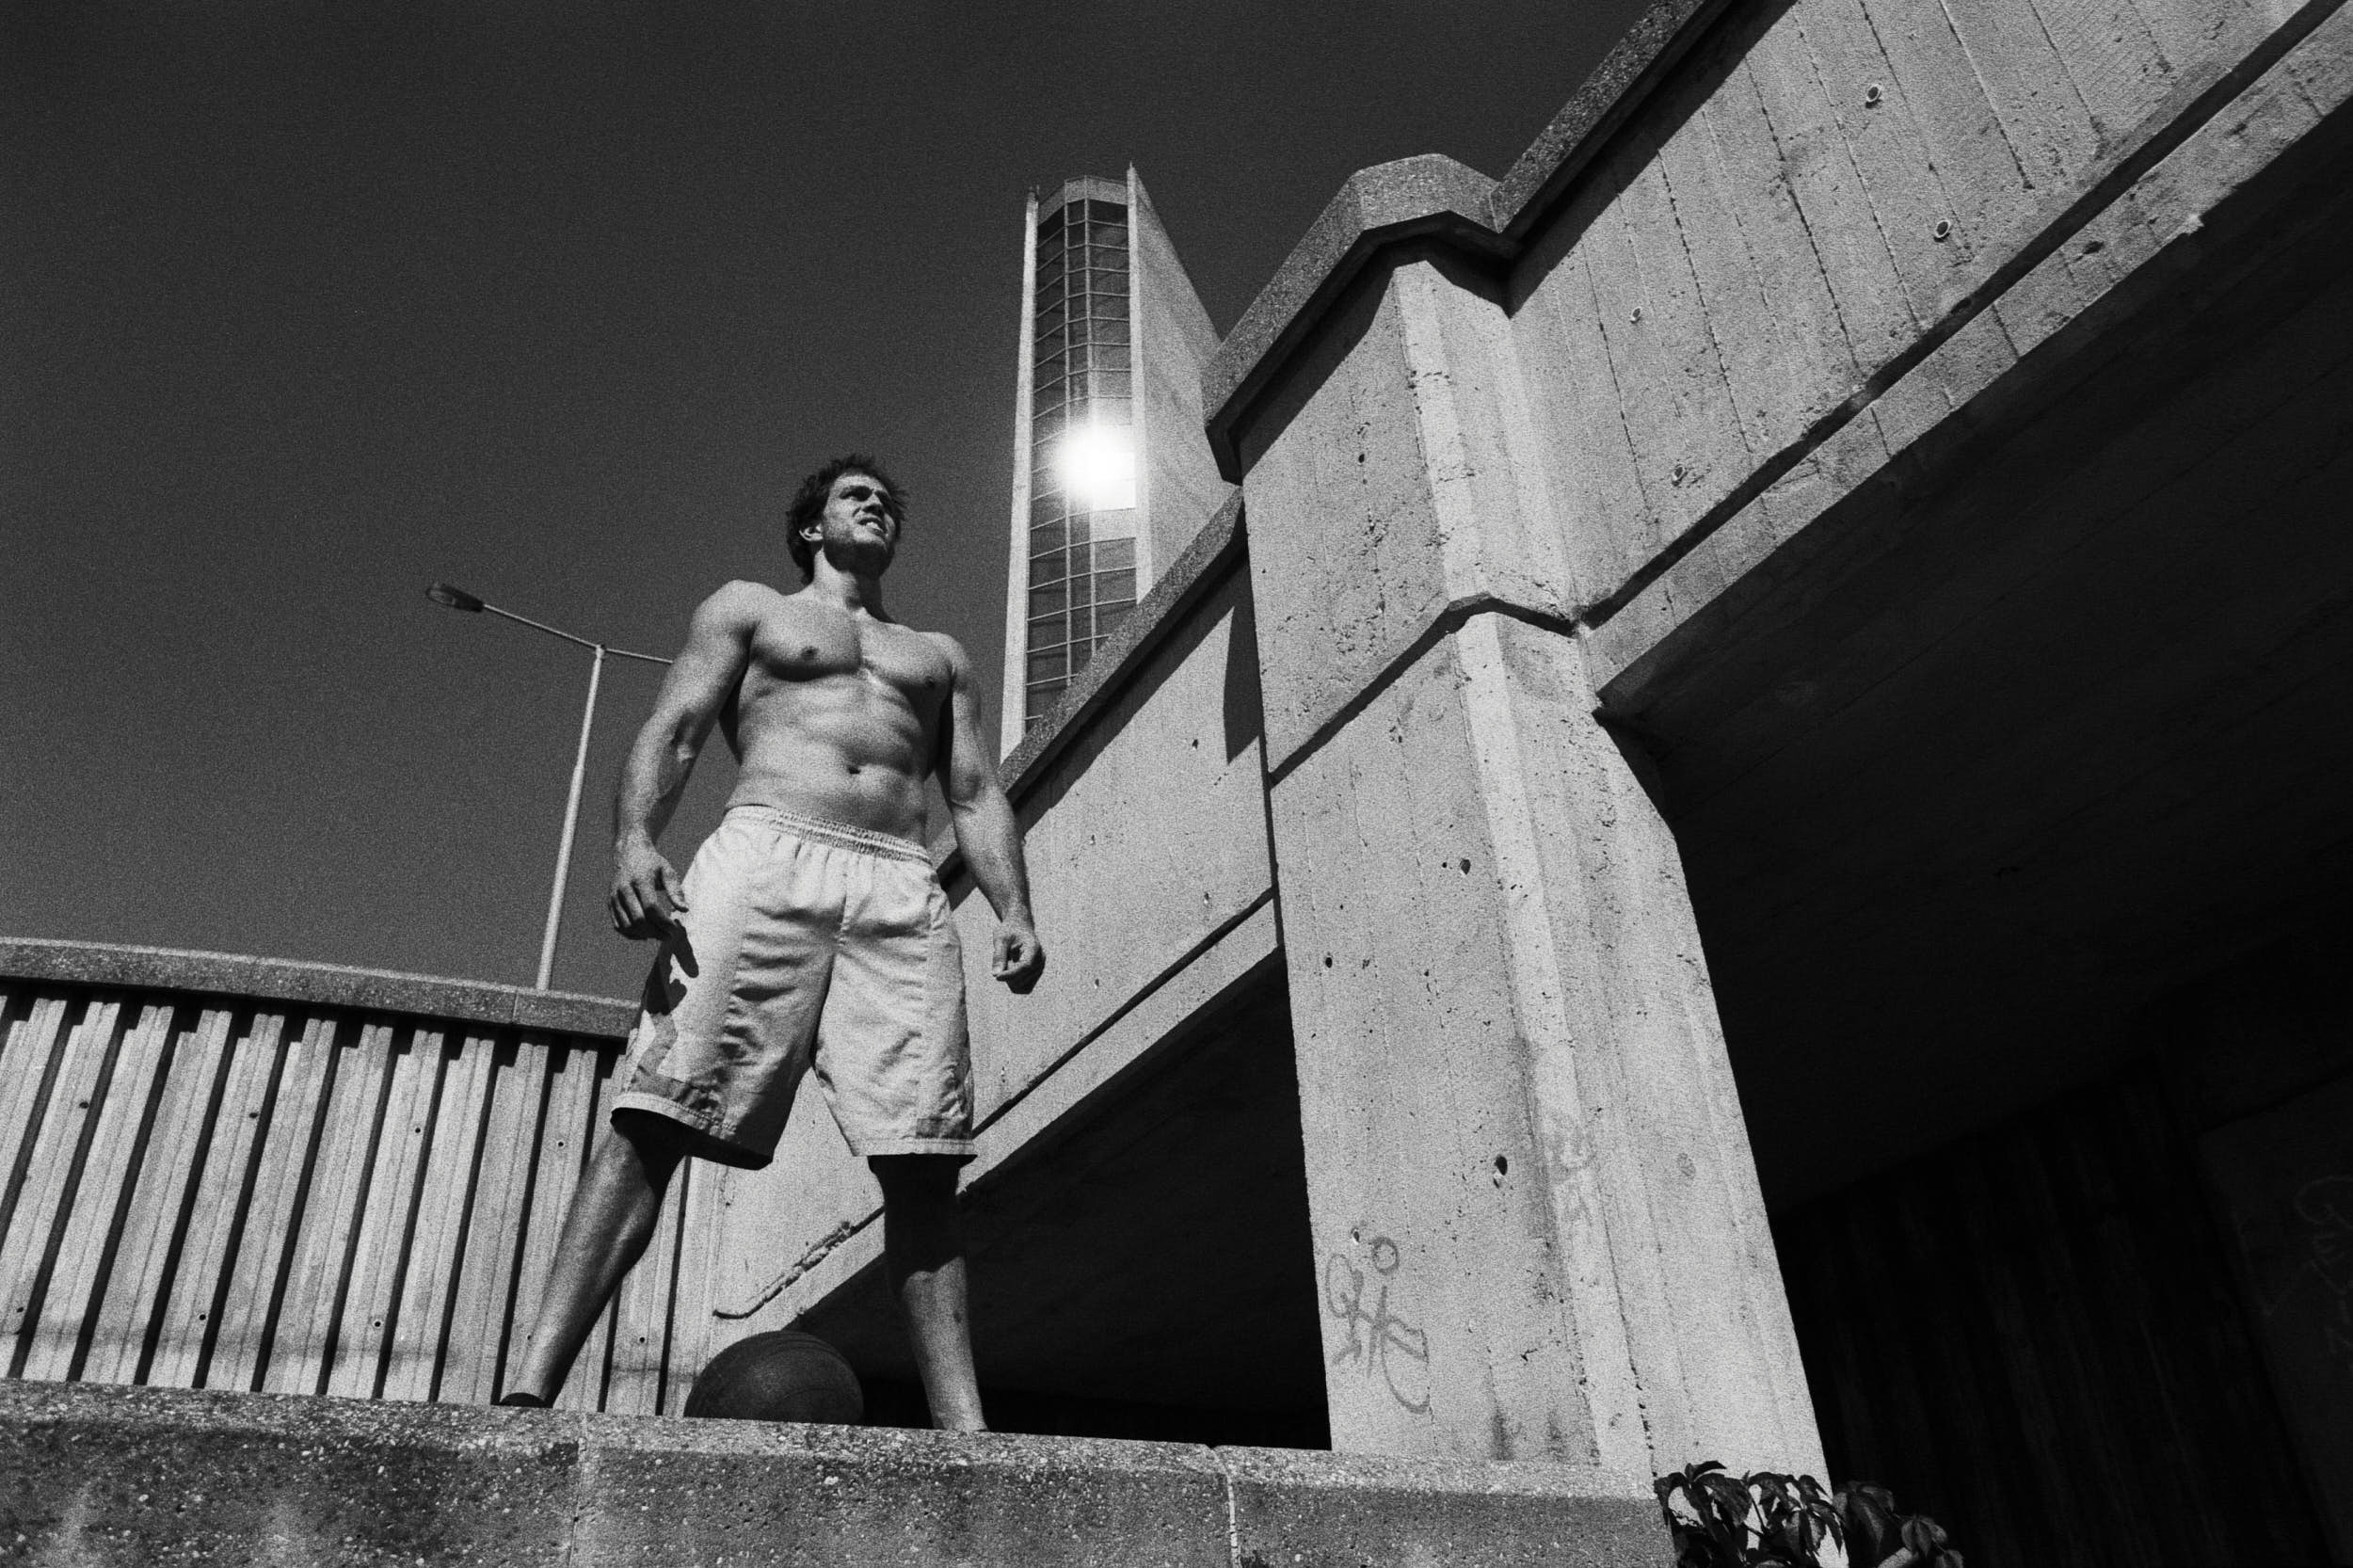 Crossfit athlete on a brutalist staircase preparing for a work out with a medicine ball.